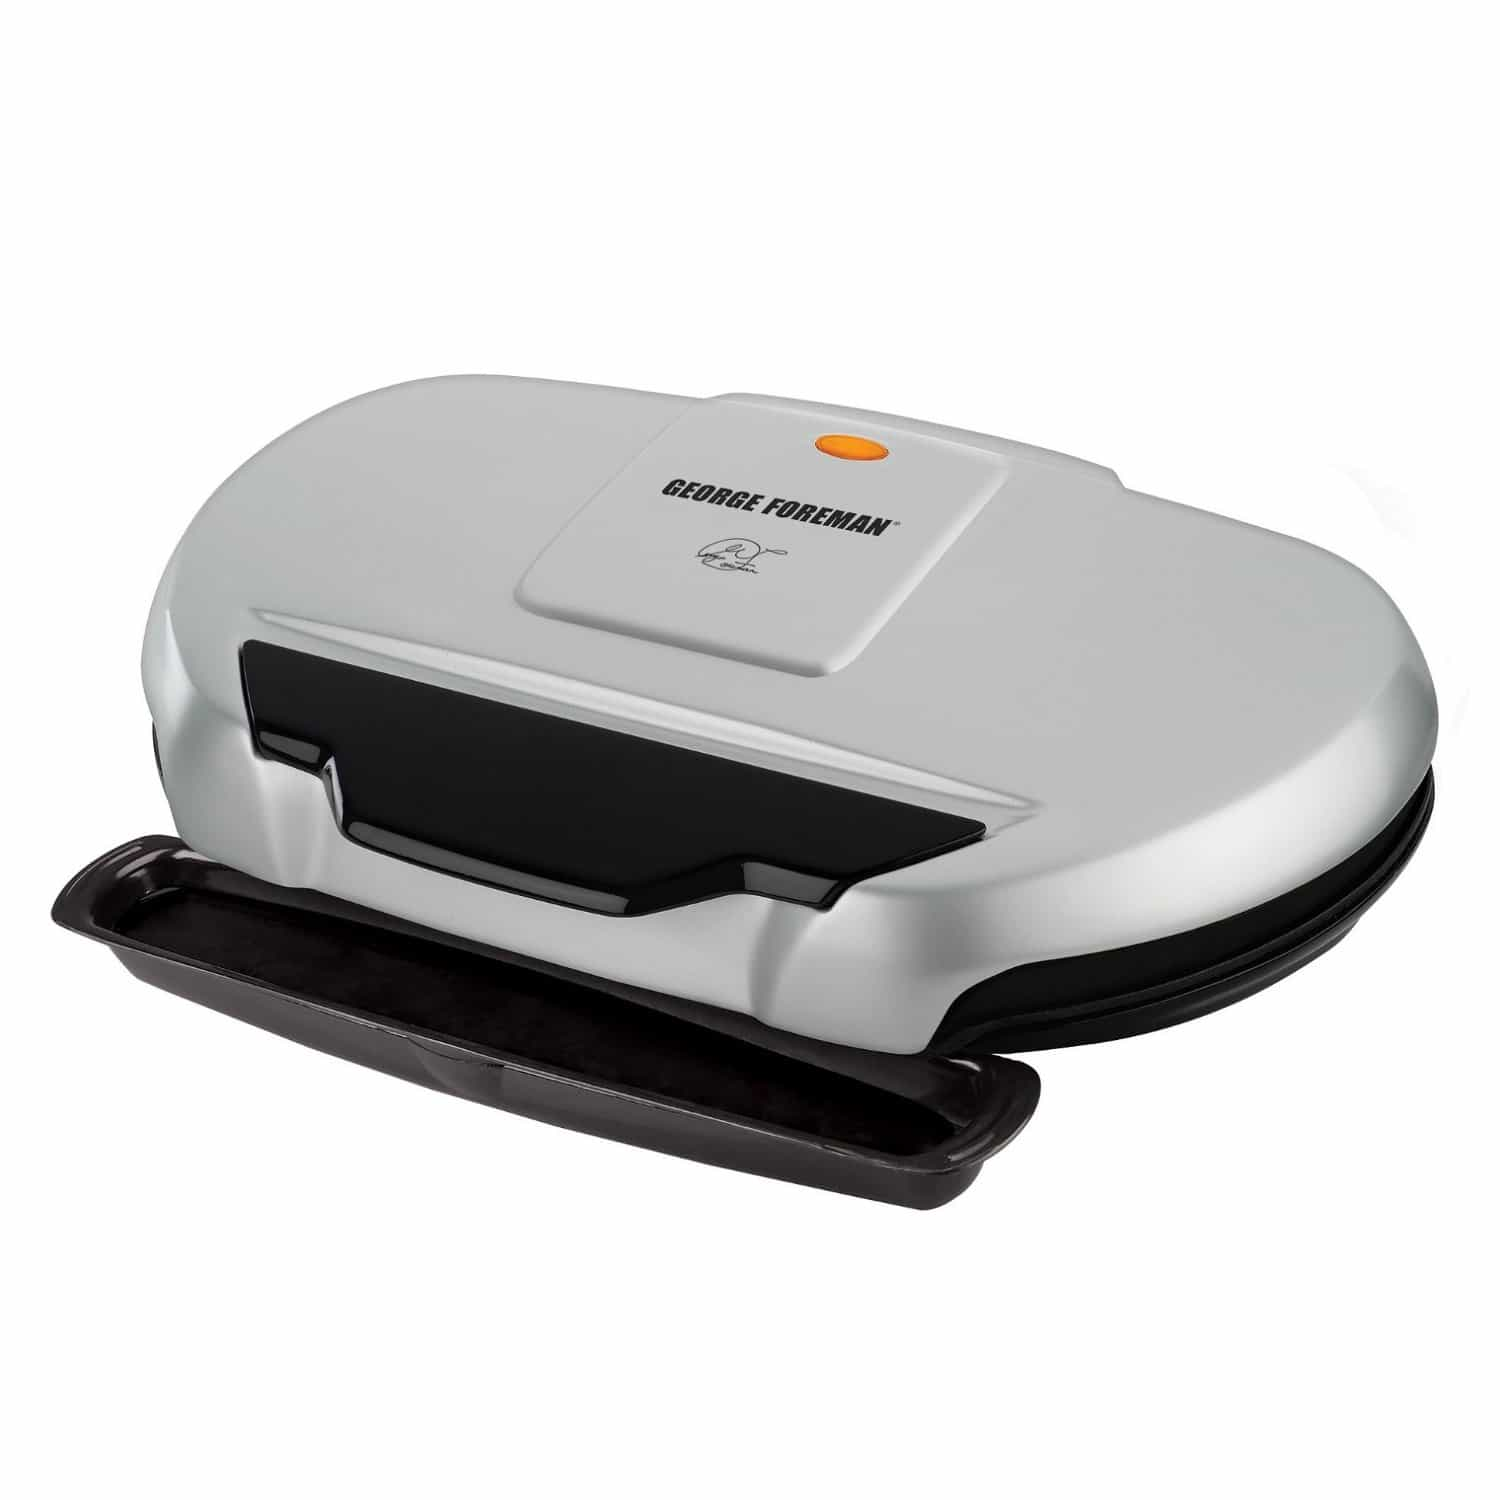 george foreman electric grilli